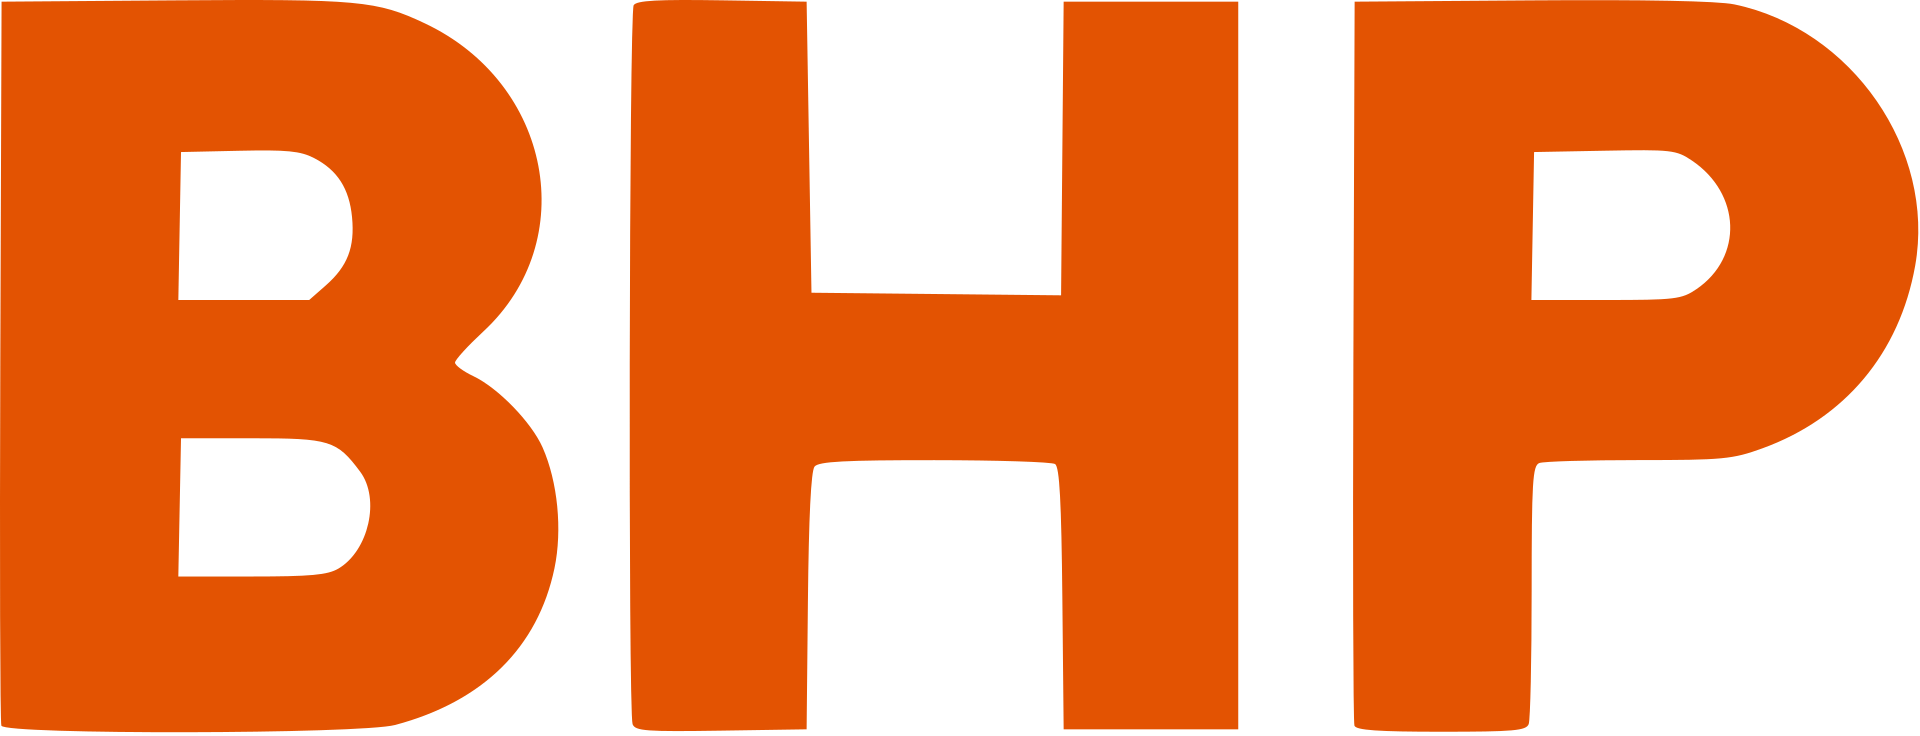 BHP Group (ASX:BHP) Company Logo Icon